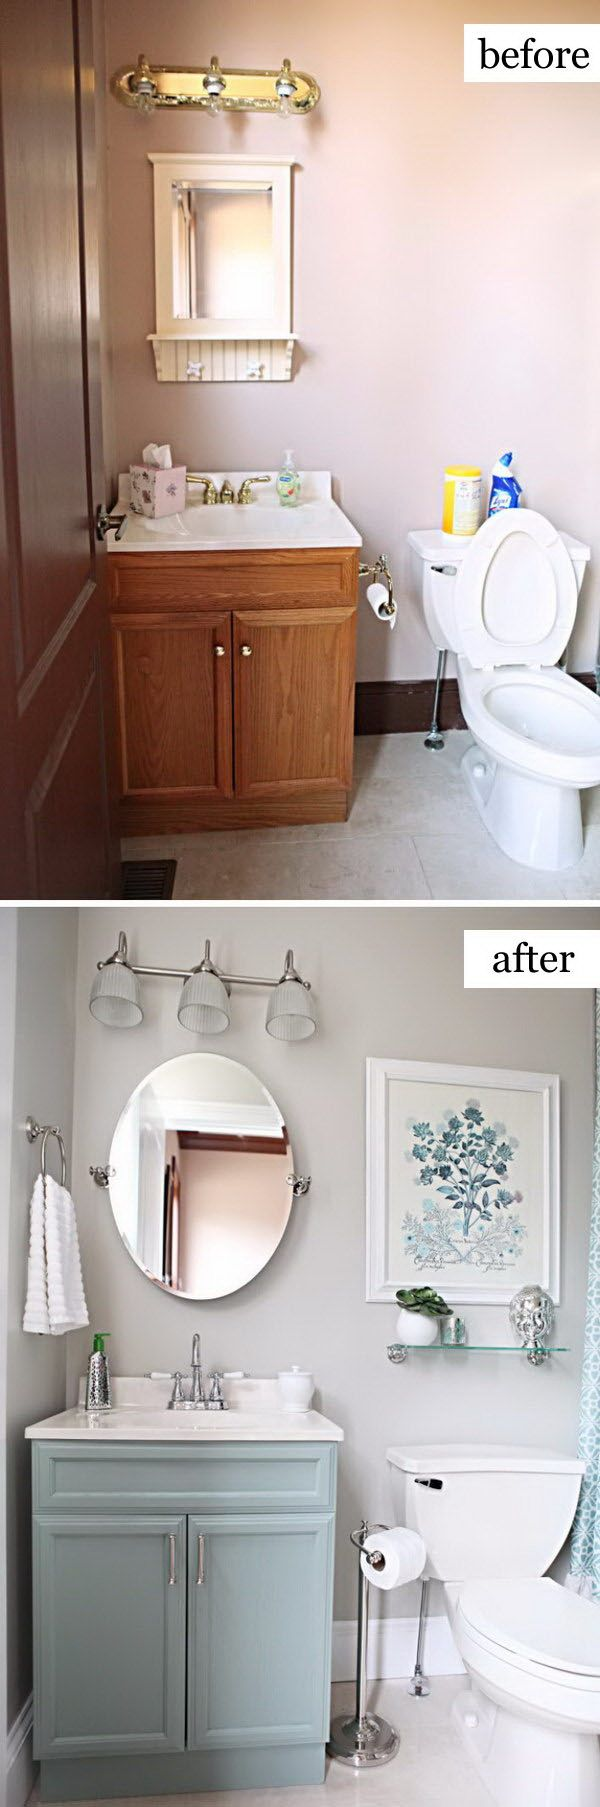 Half Bathroom Ideas 25+ best small guest bathrooms ideas on pinterest | half bathroom